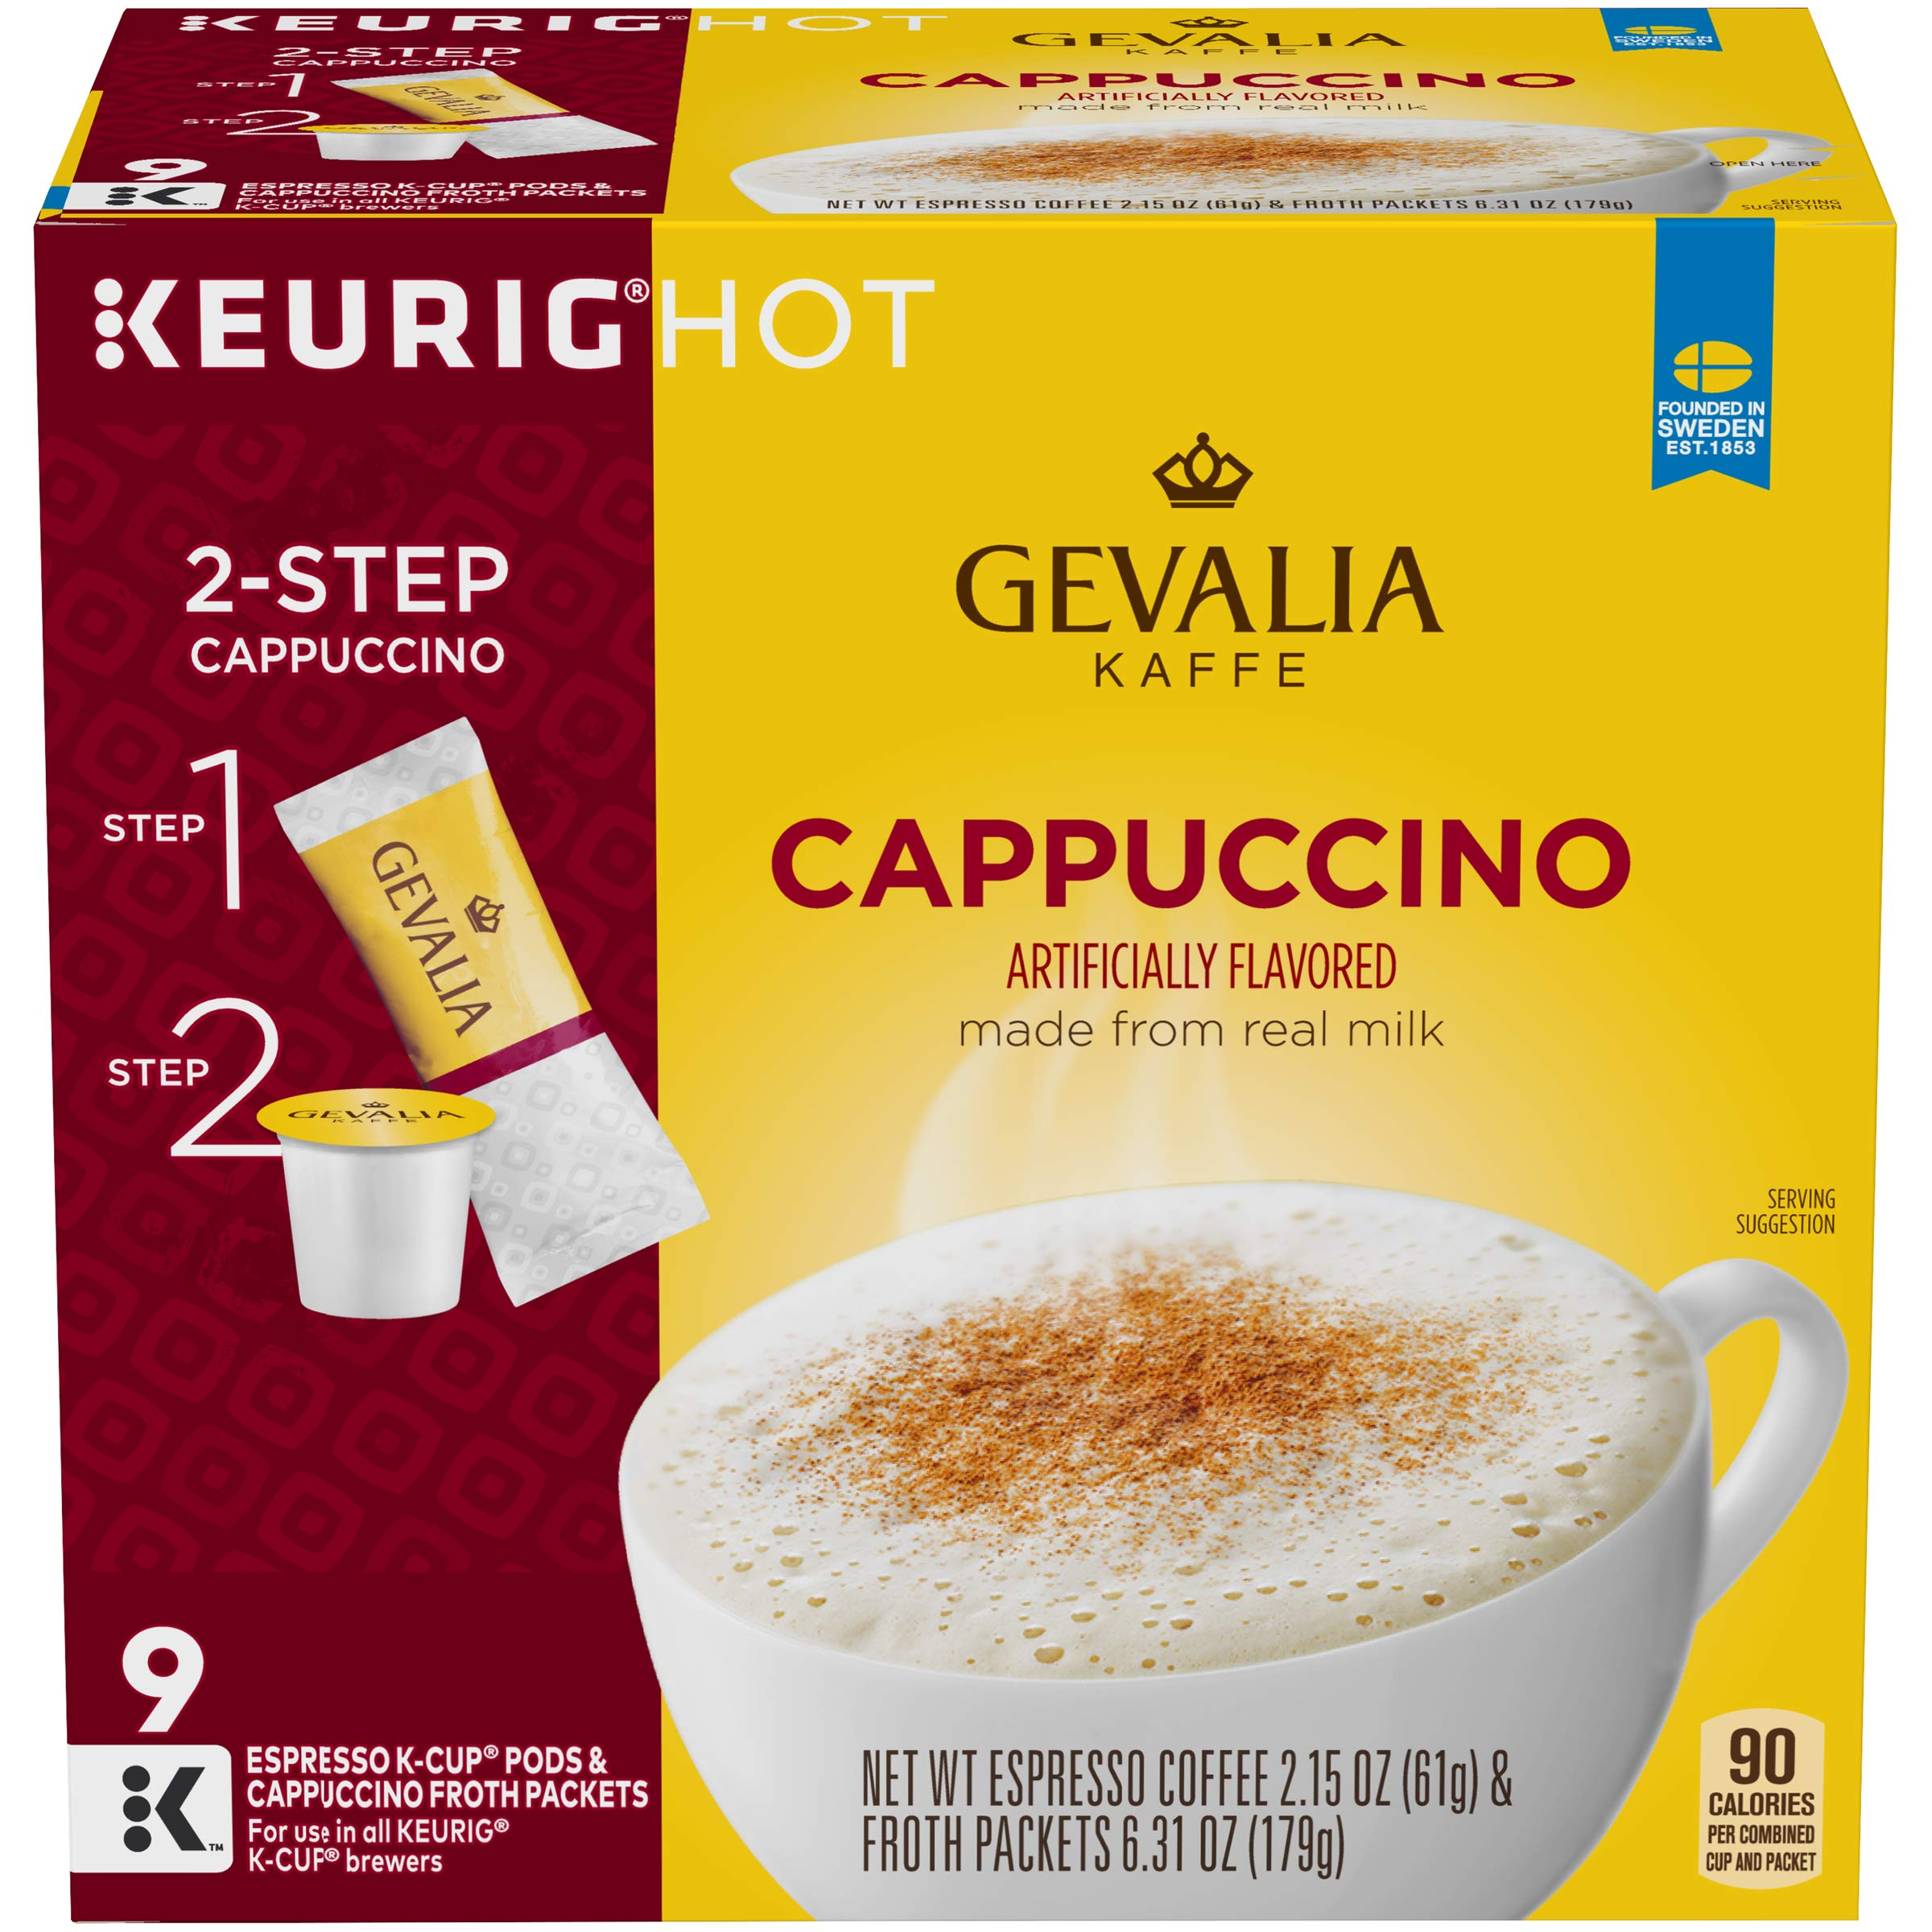 Gevalia Cappuccino Keurig K Cup Pods with Froth Packets (36 Count, 4 Boxes of 9) by Gevalia